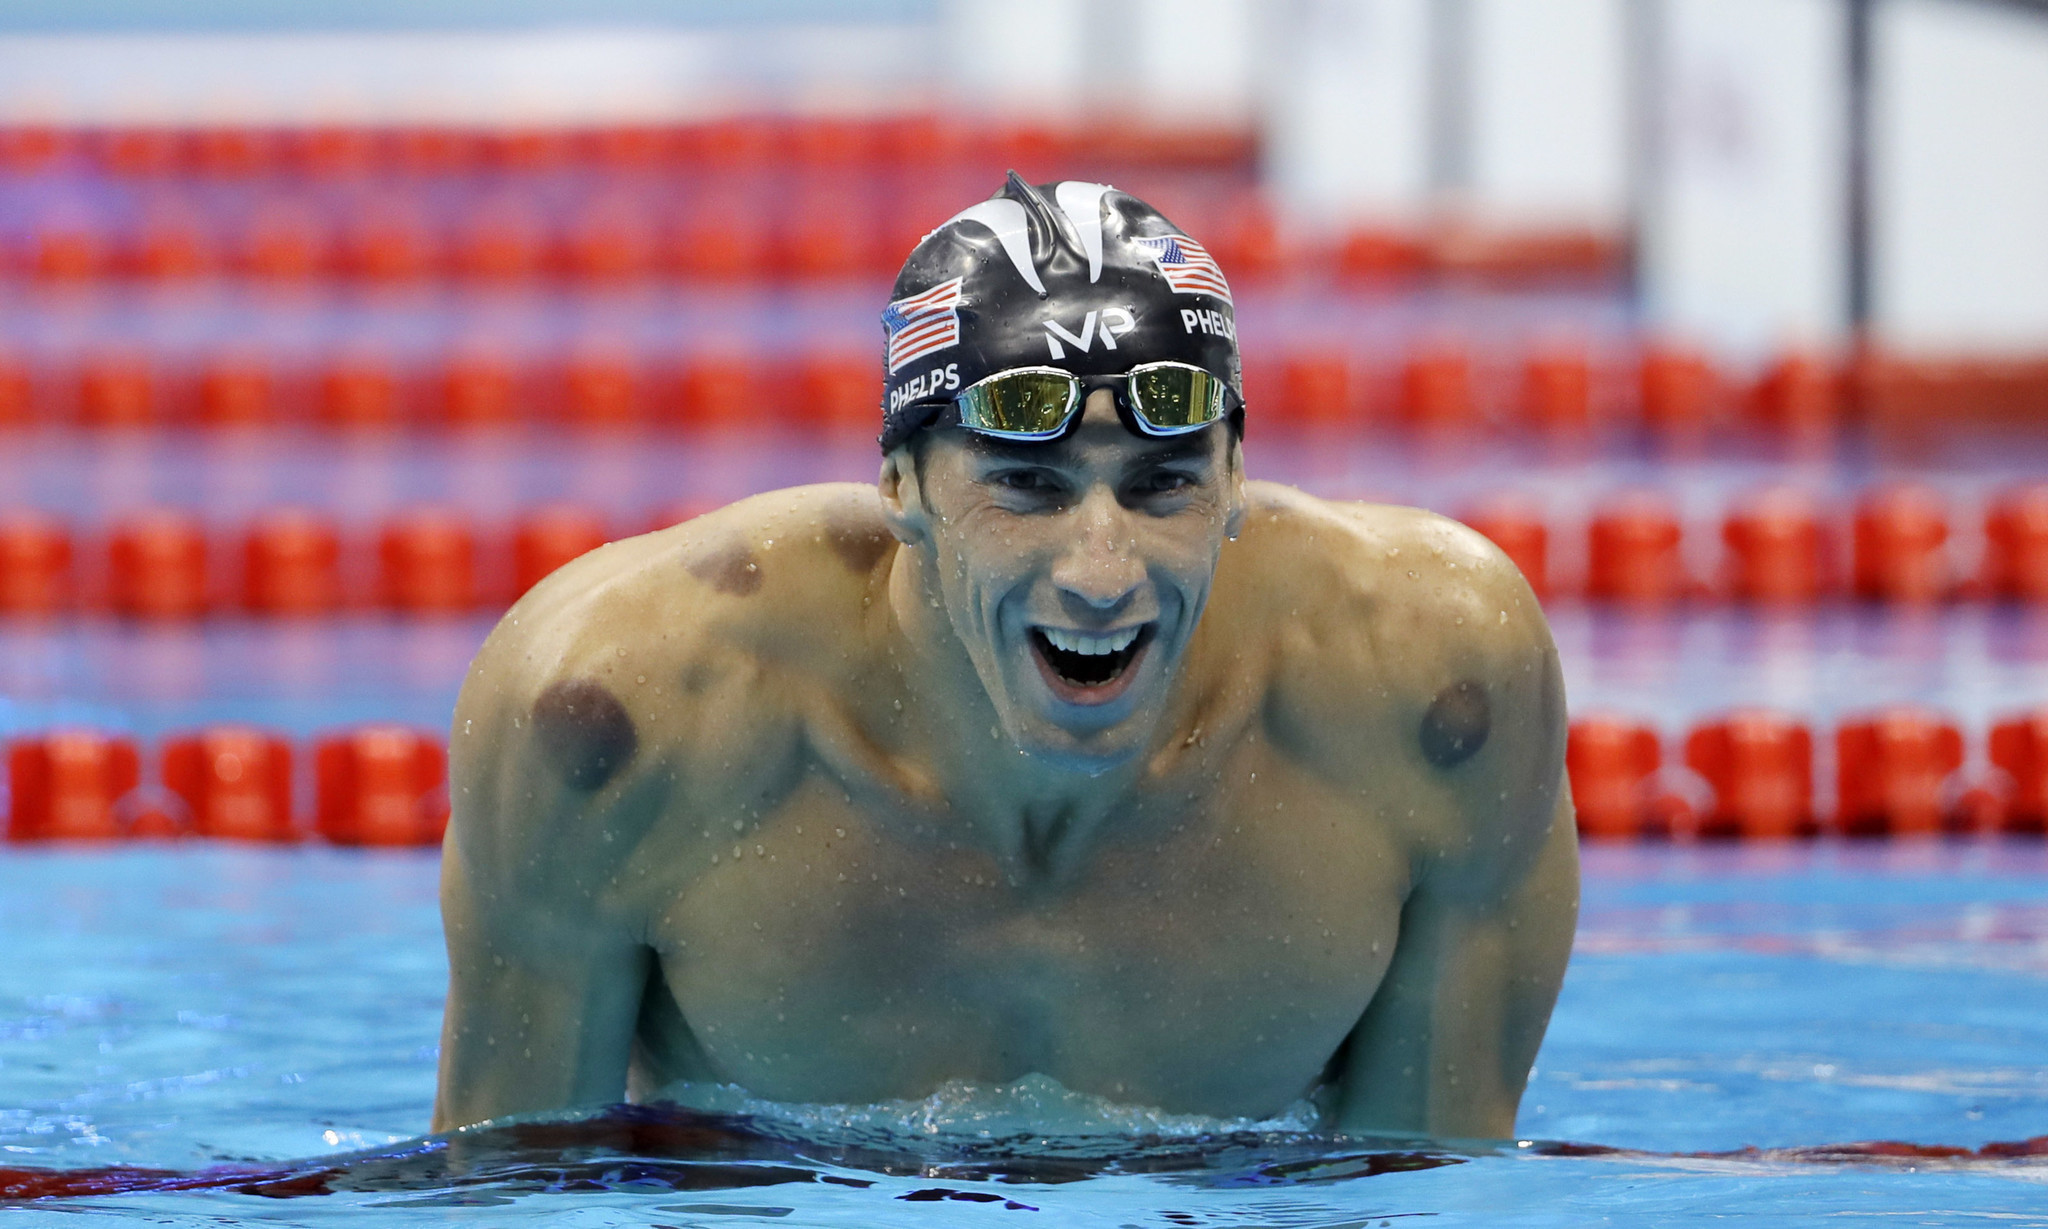 For Michael Phelps It 39 S 21 Gold Medals One 39 O 39 And 39 Chad Who 39 Baltimore Sun